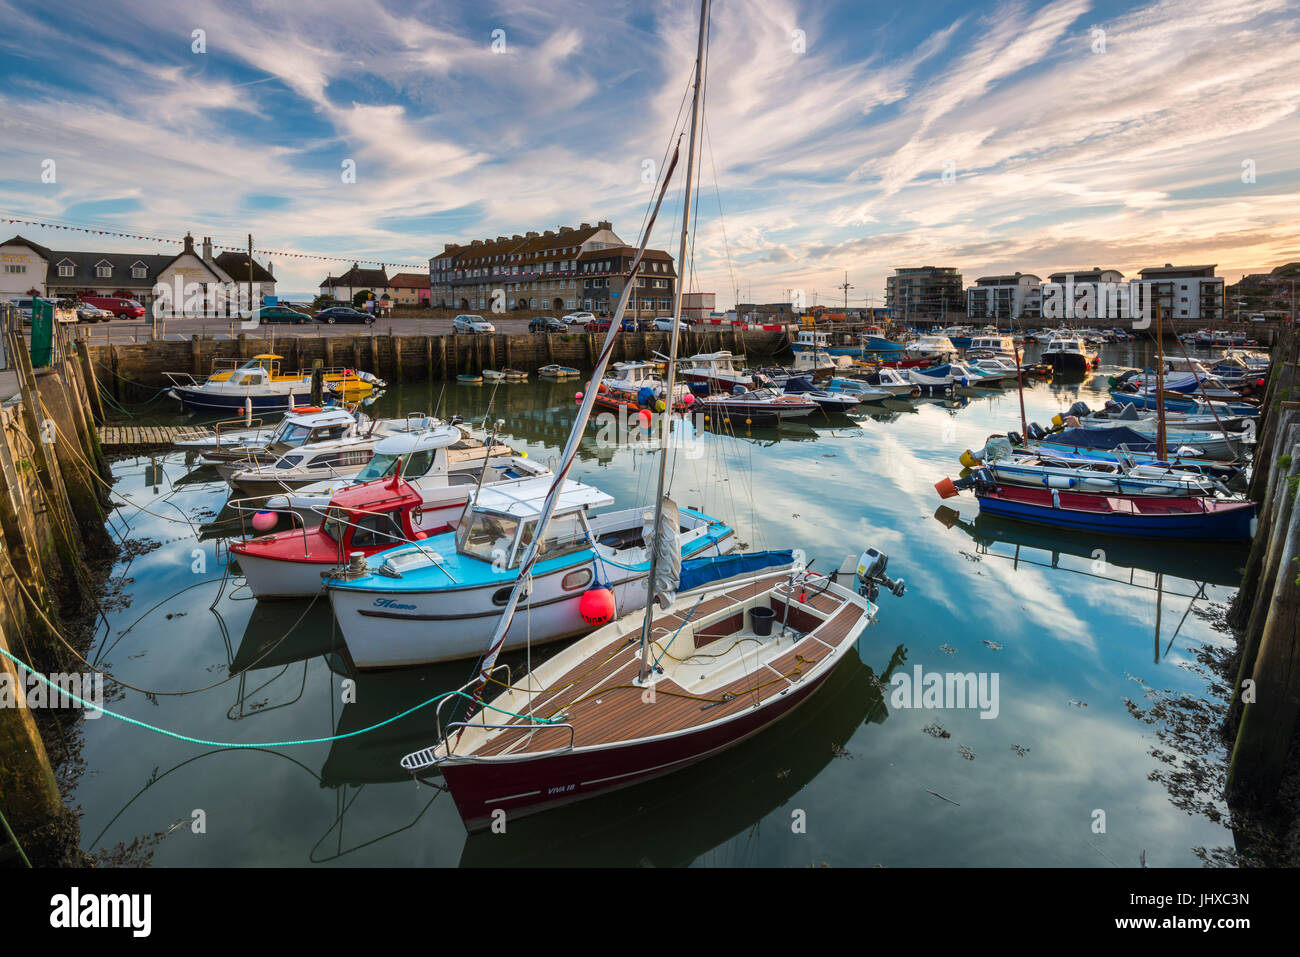 West Bay, Dorset, UK.  16th July 2017.  UK Weather.  A warm settled evening with high wispy cloud above the harbour - Stock Image